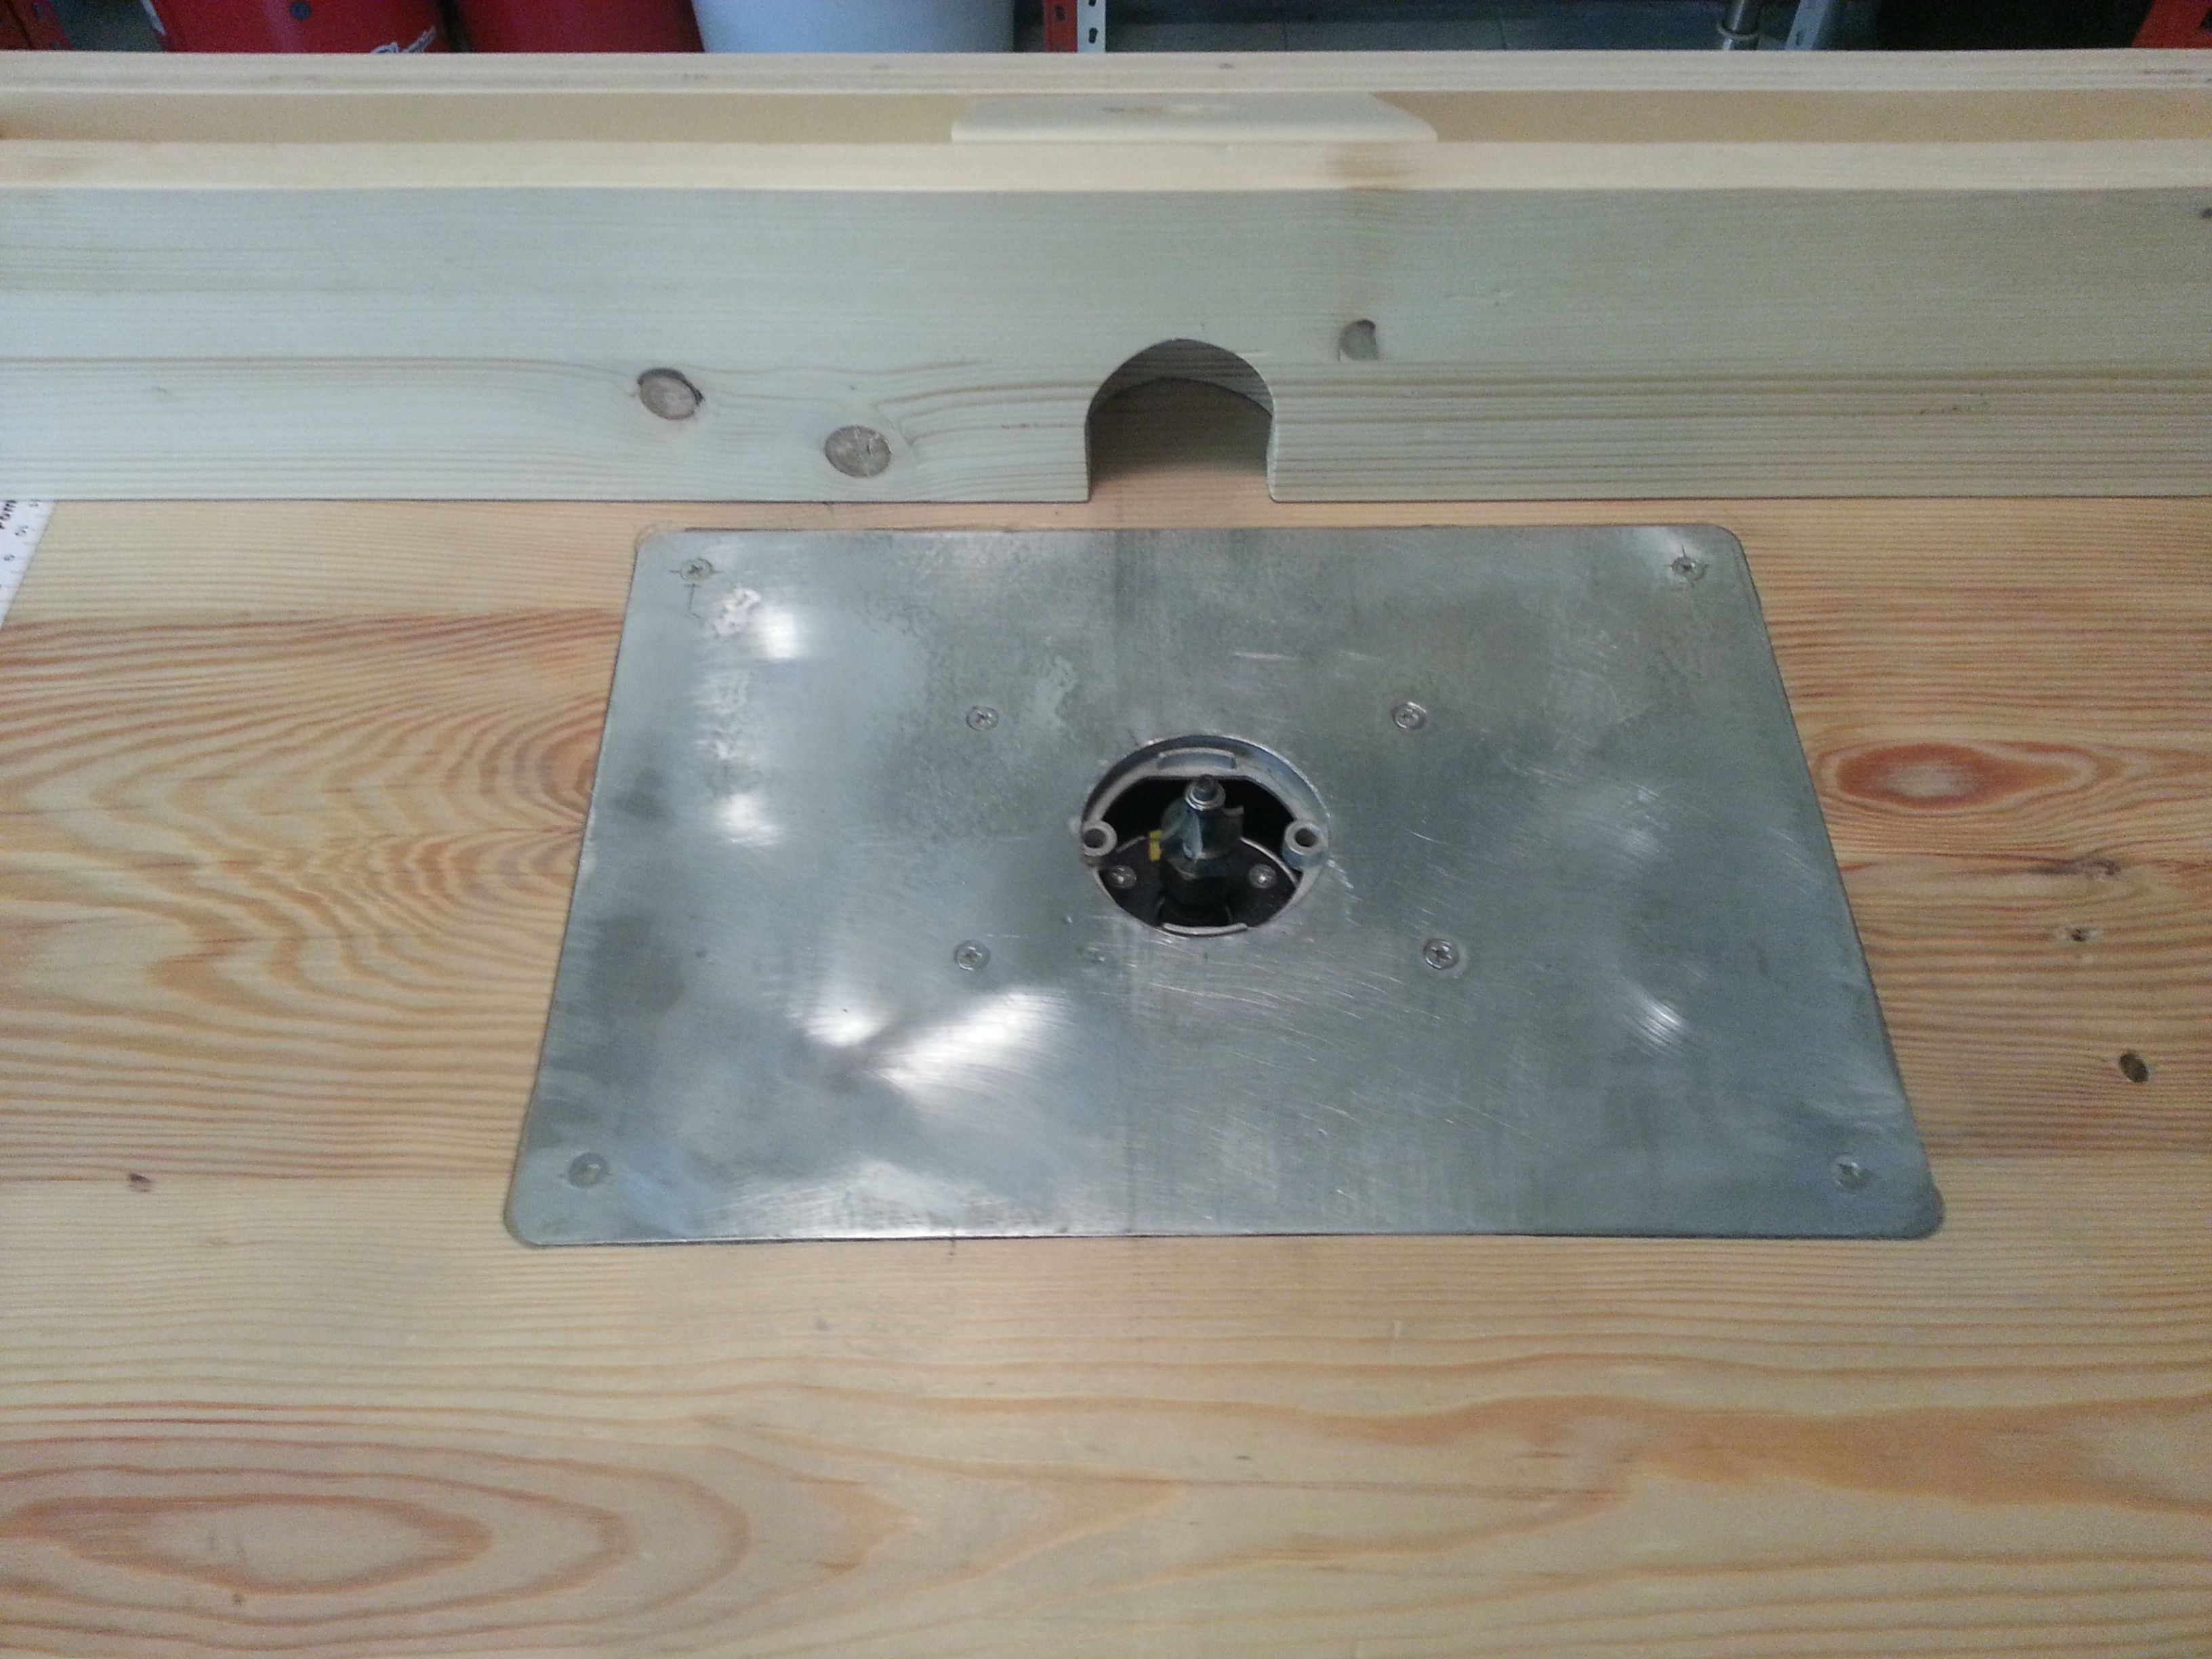 Homemade router table top  router table  router table  Pinterest  Router table